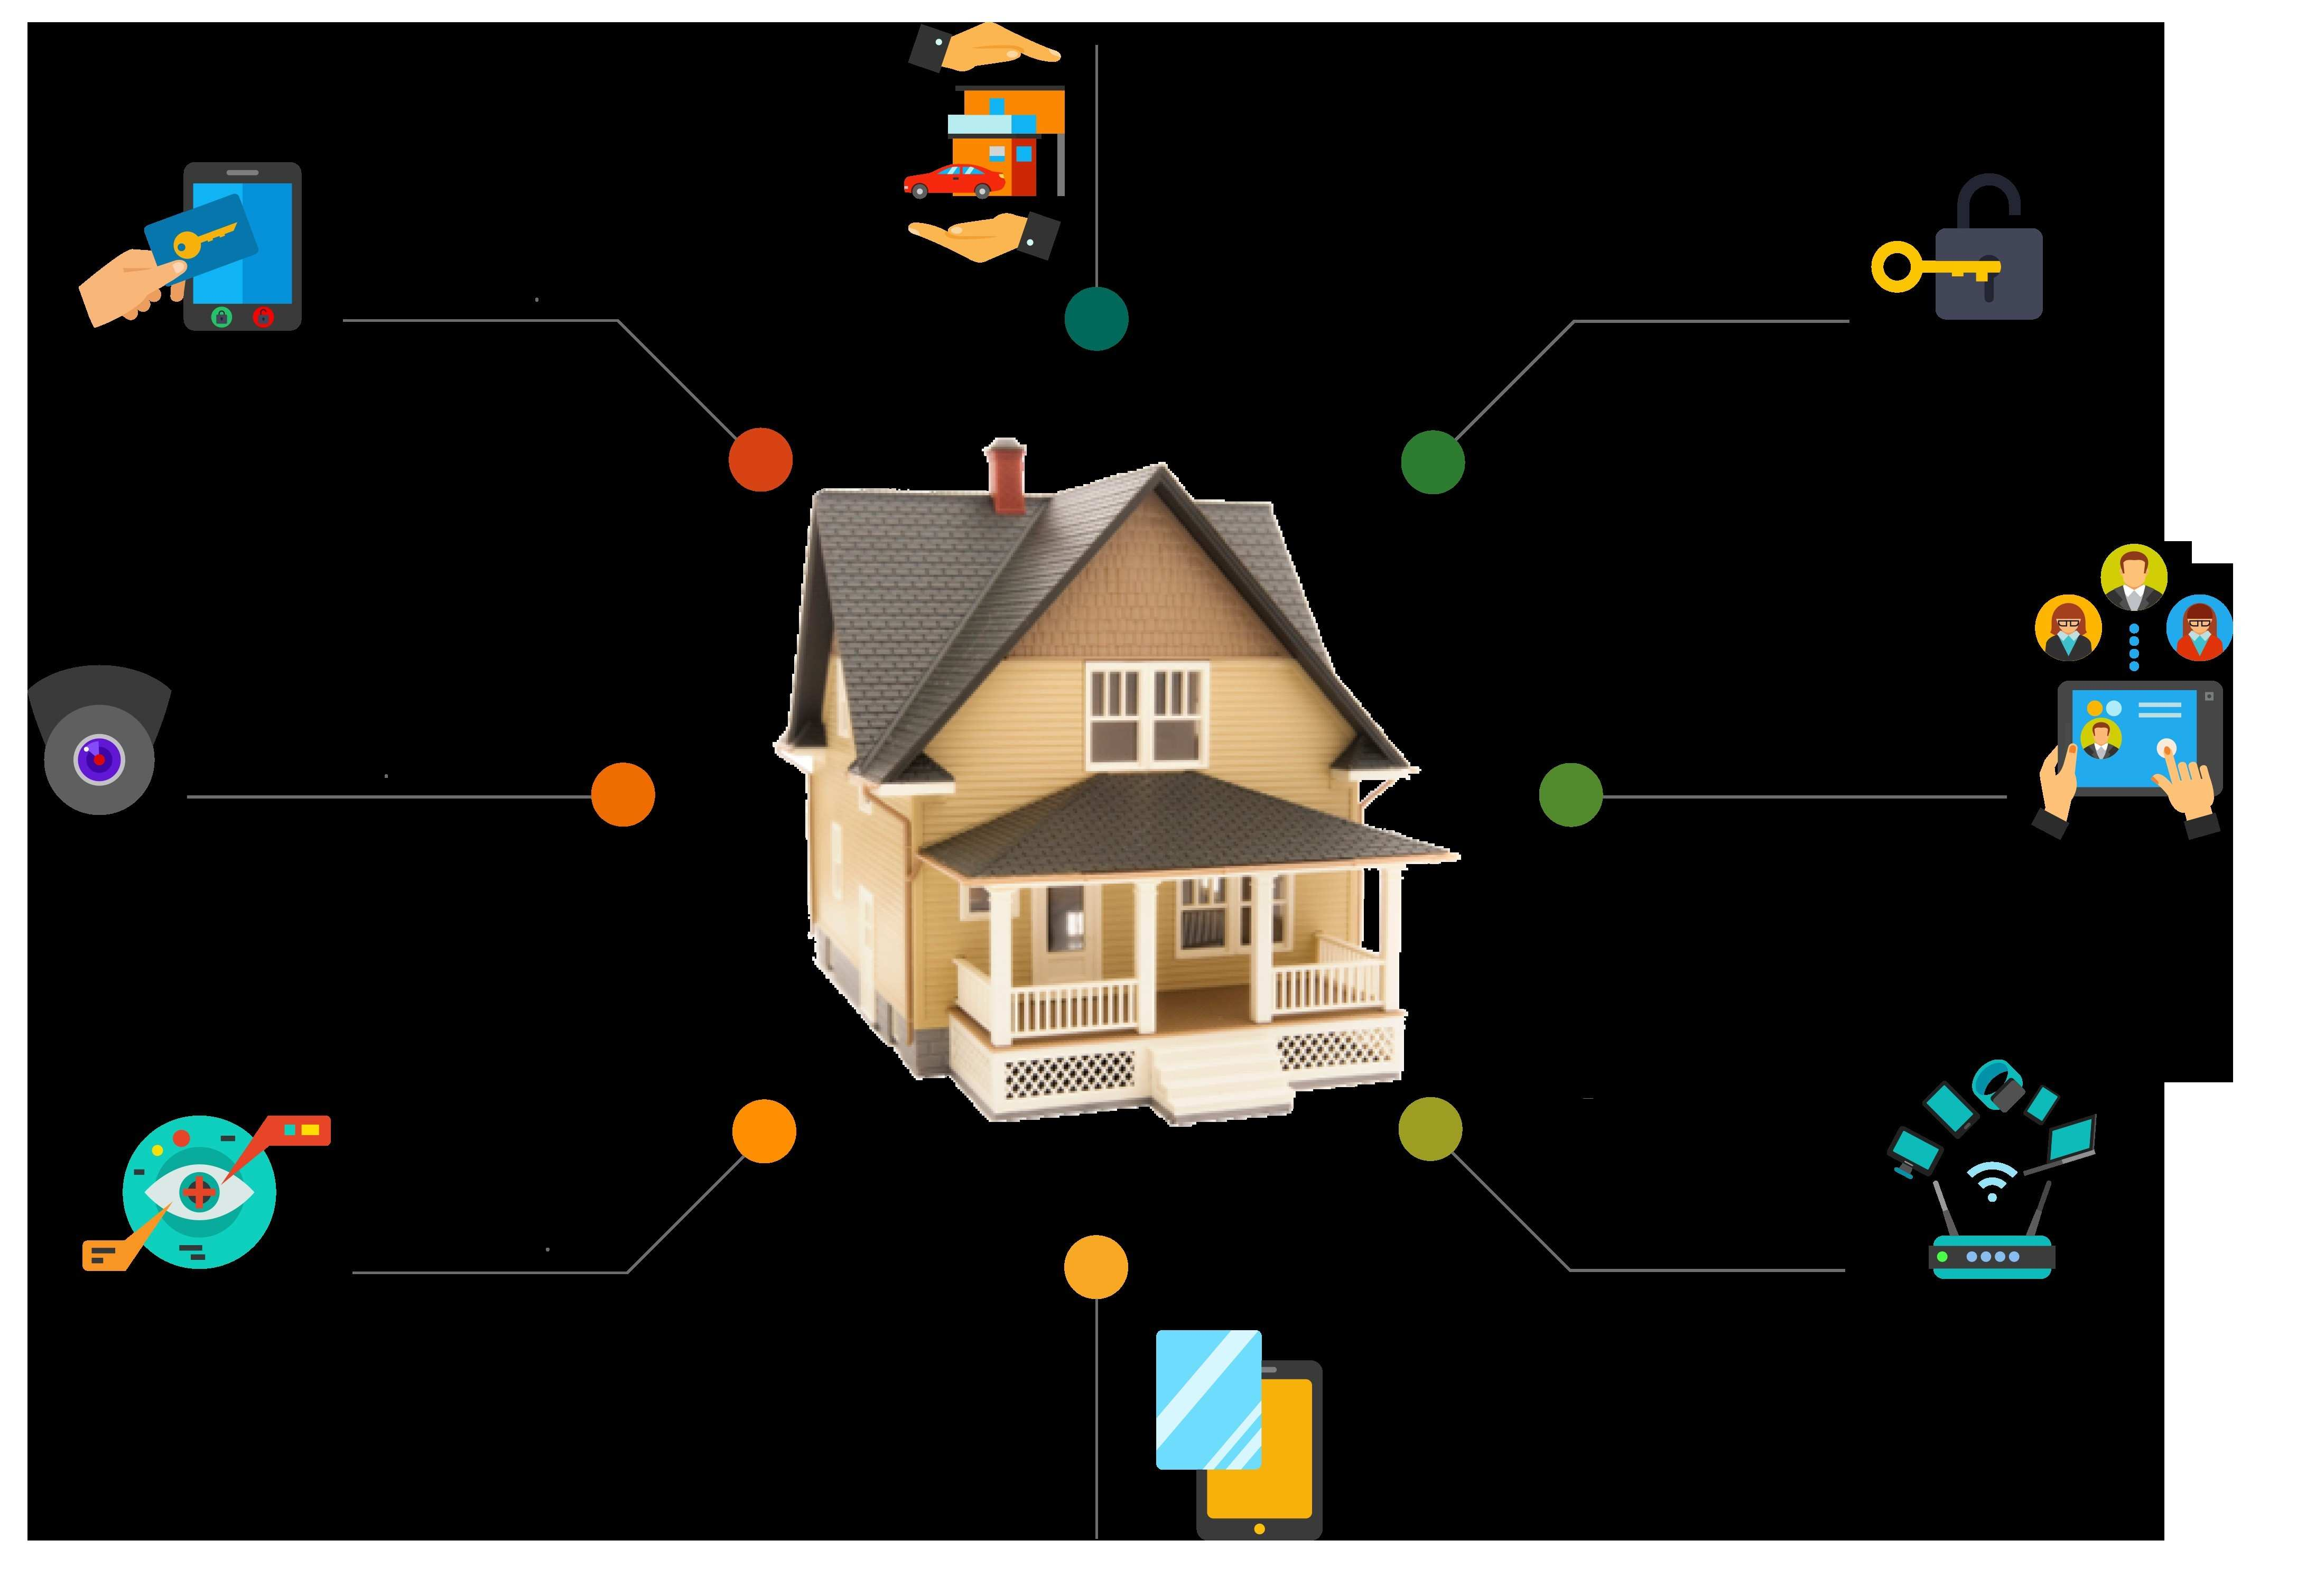 Good Looking Adt Home Security Plans 3 Monitoring Packages Pricing